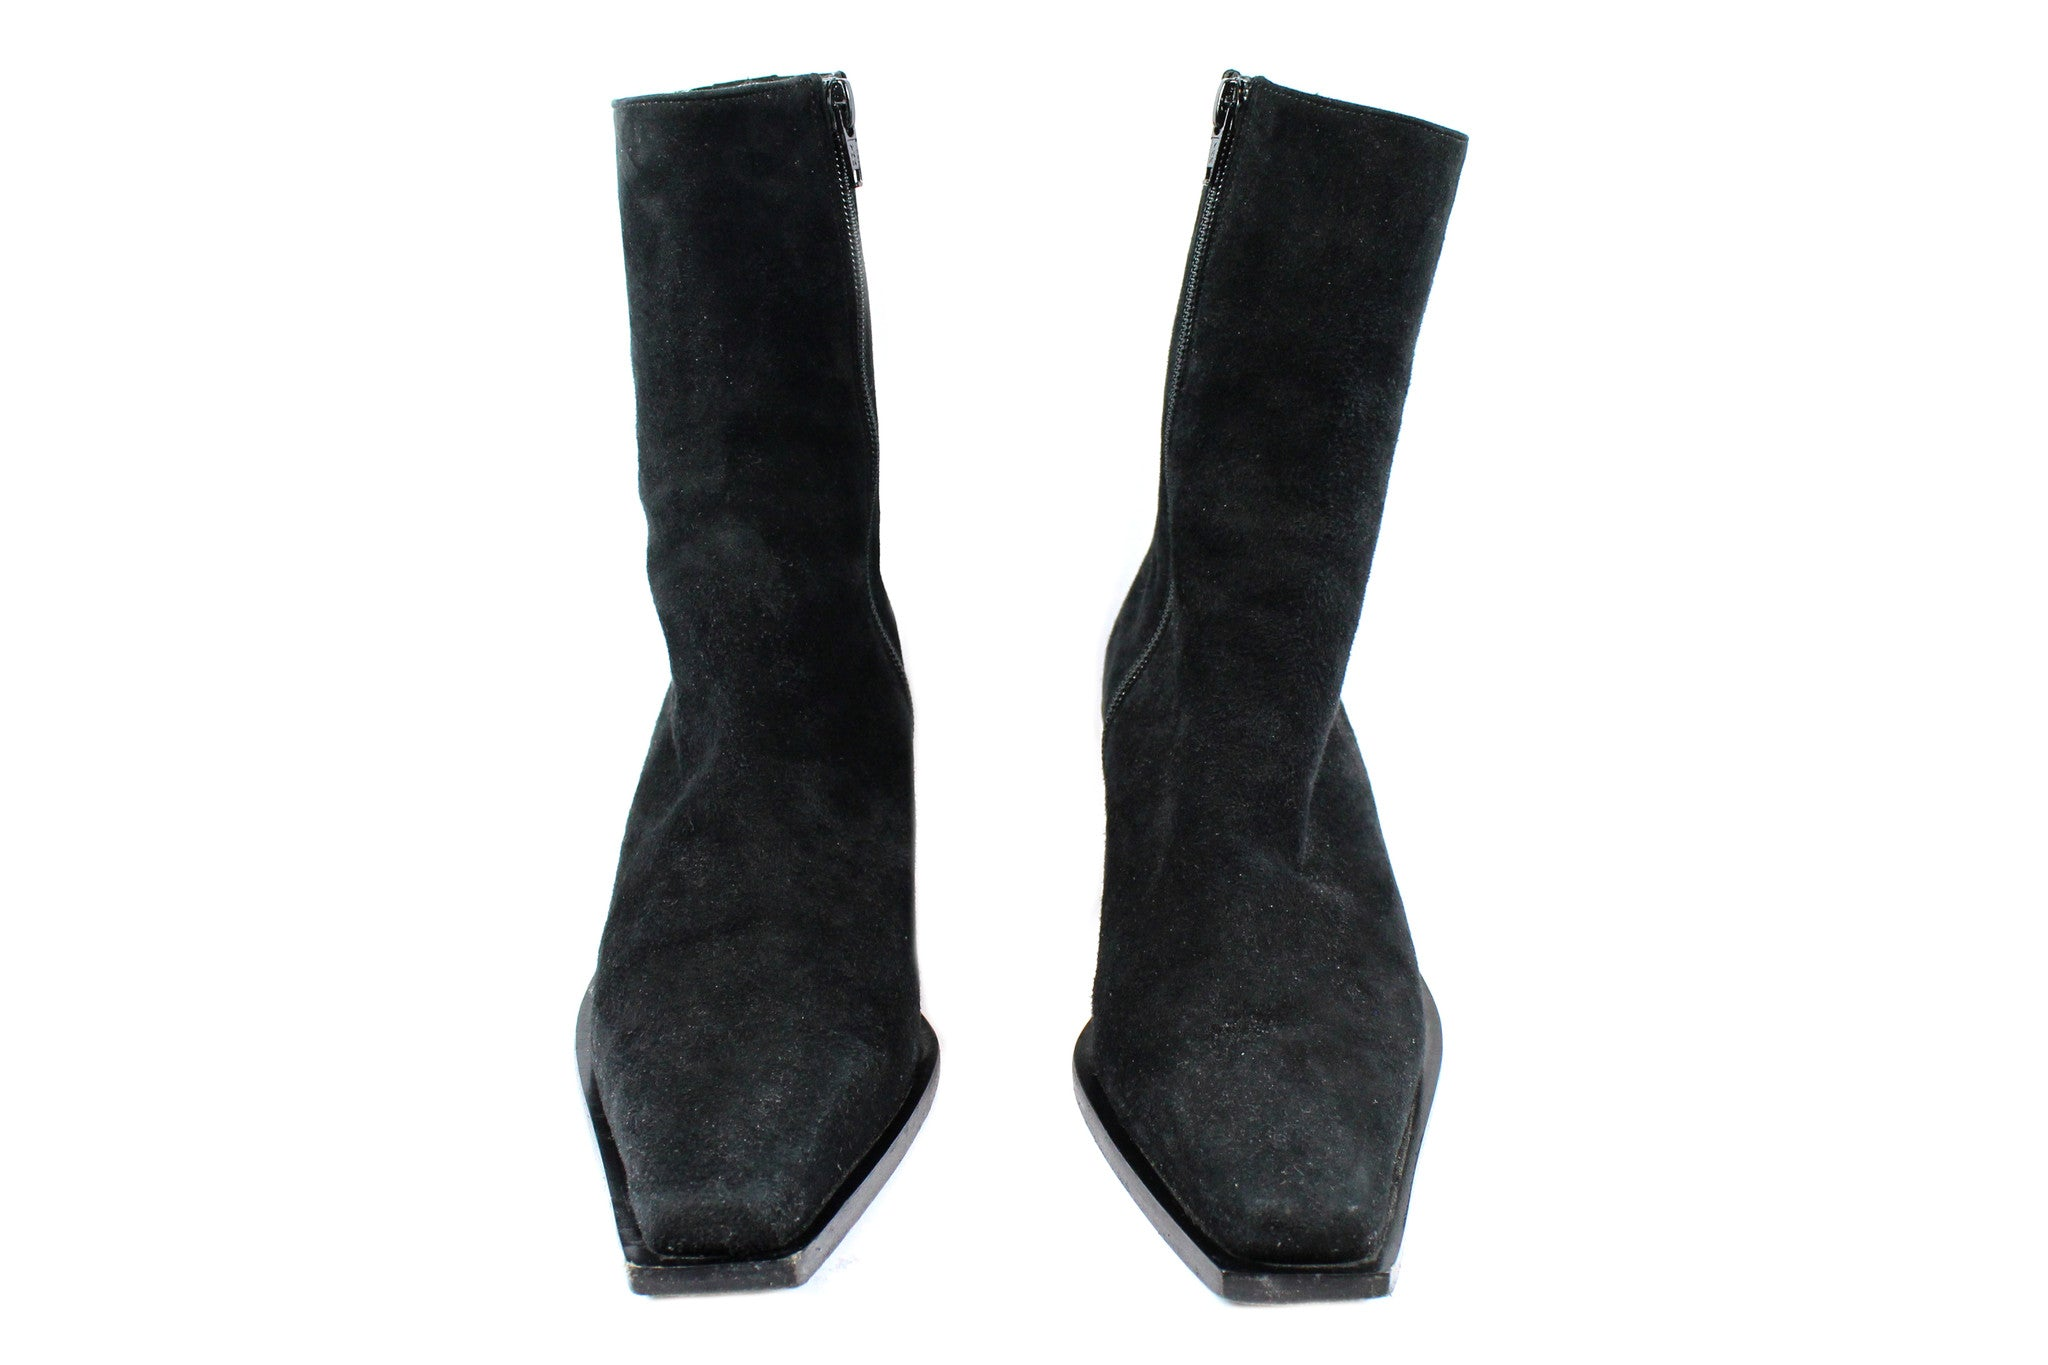 'SOLD' Ann Demeulemeester Suede Ankle Boots w Slanted Heel (Size 37) - Encore Consignment - 3